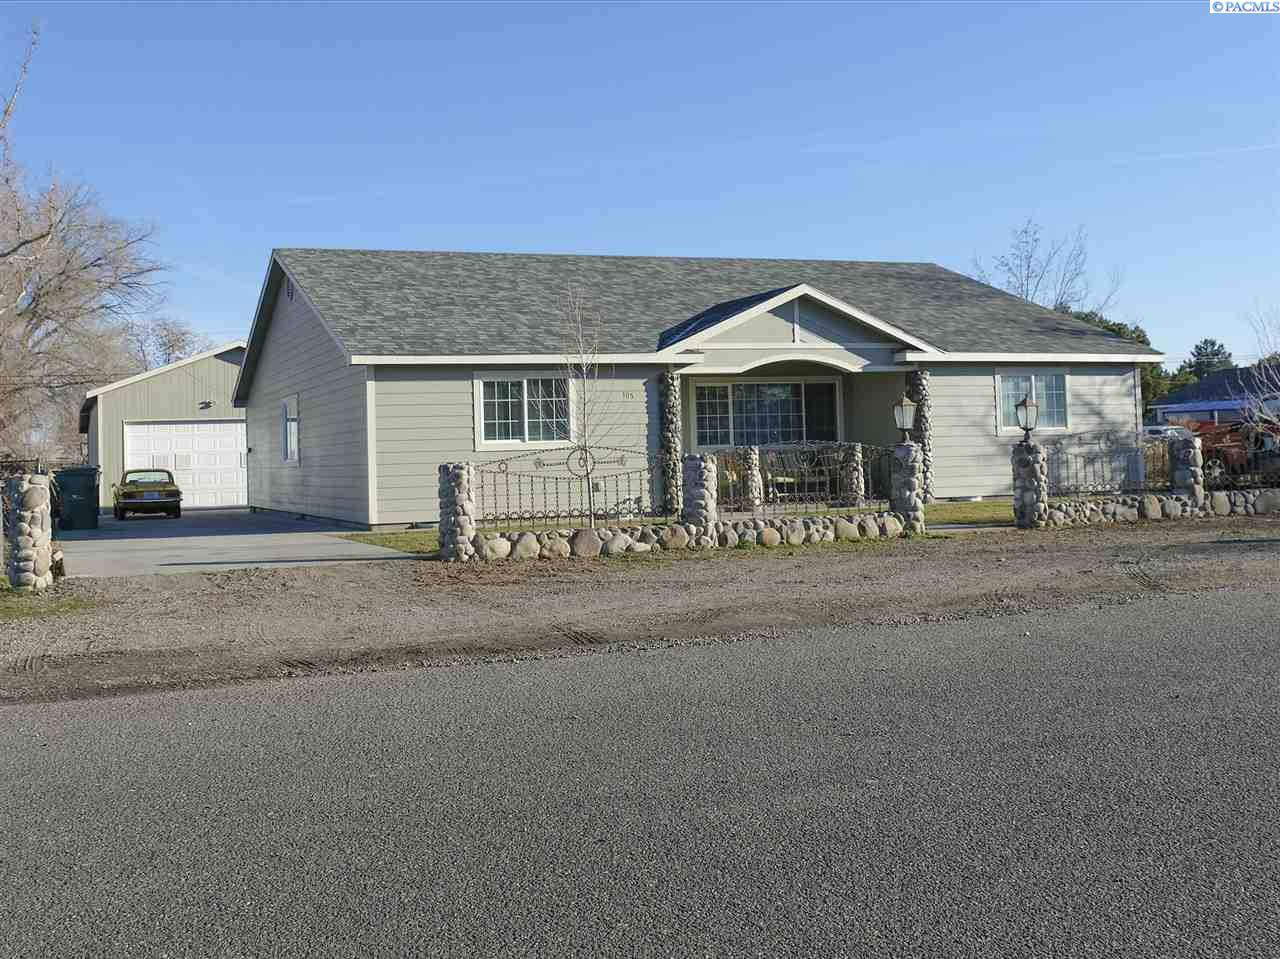 Single Family Home for Sale at 105 S Williams Street 105 S Williams Street Kennewick, Washington 99336 United States